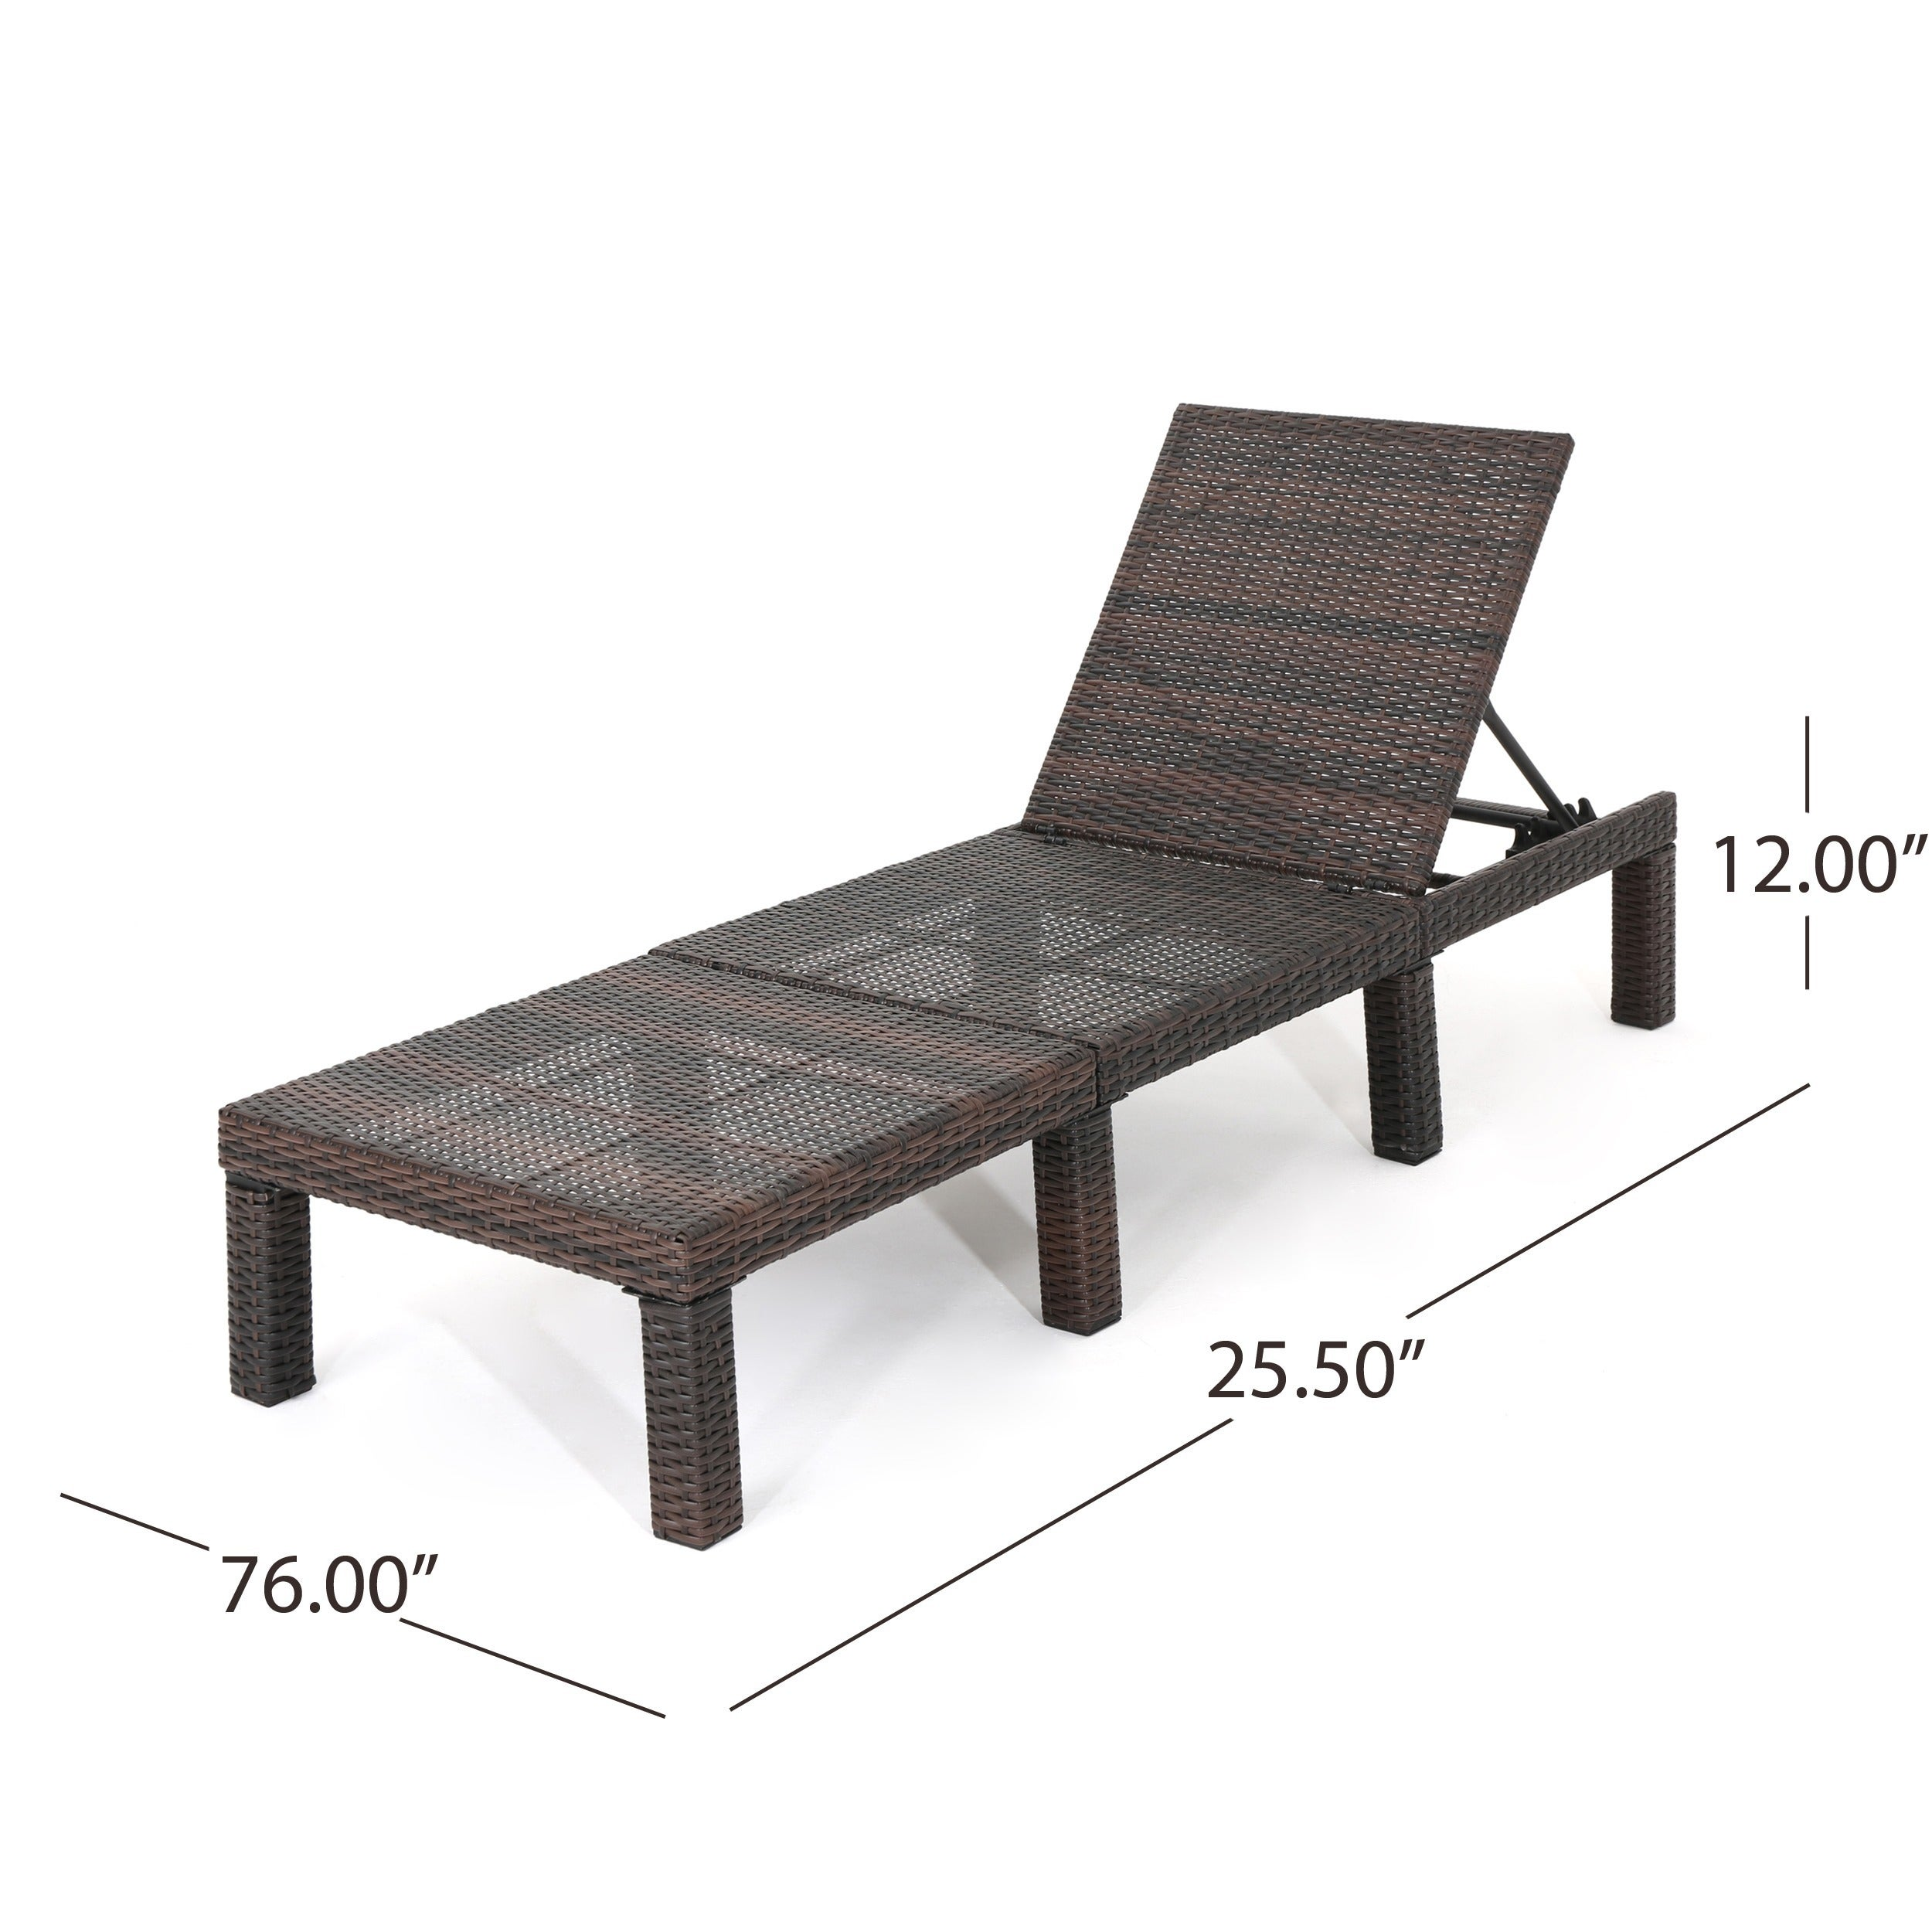 outdoor cushion wayfair reviews pdp chaise trex